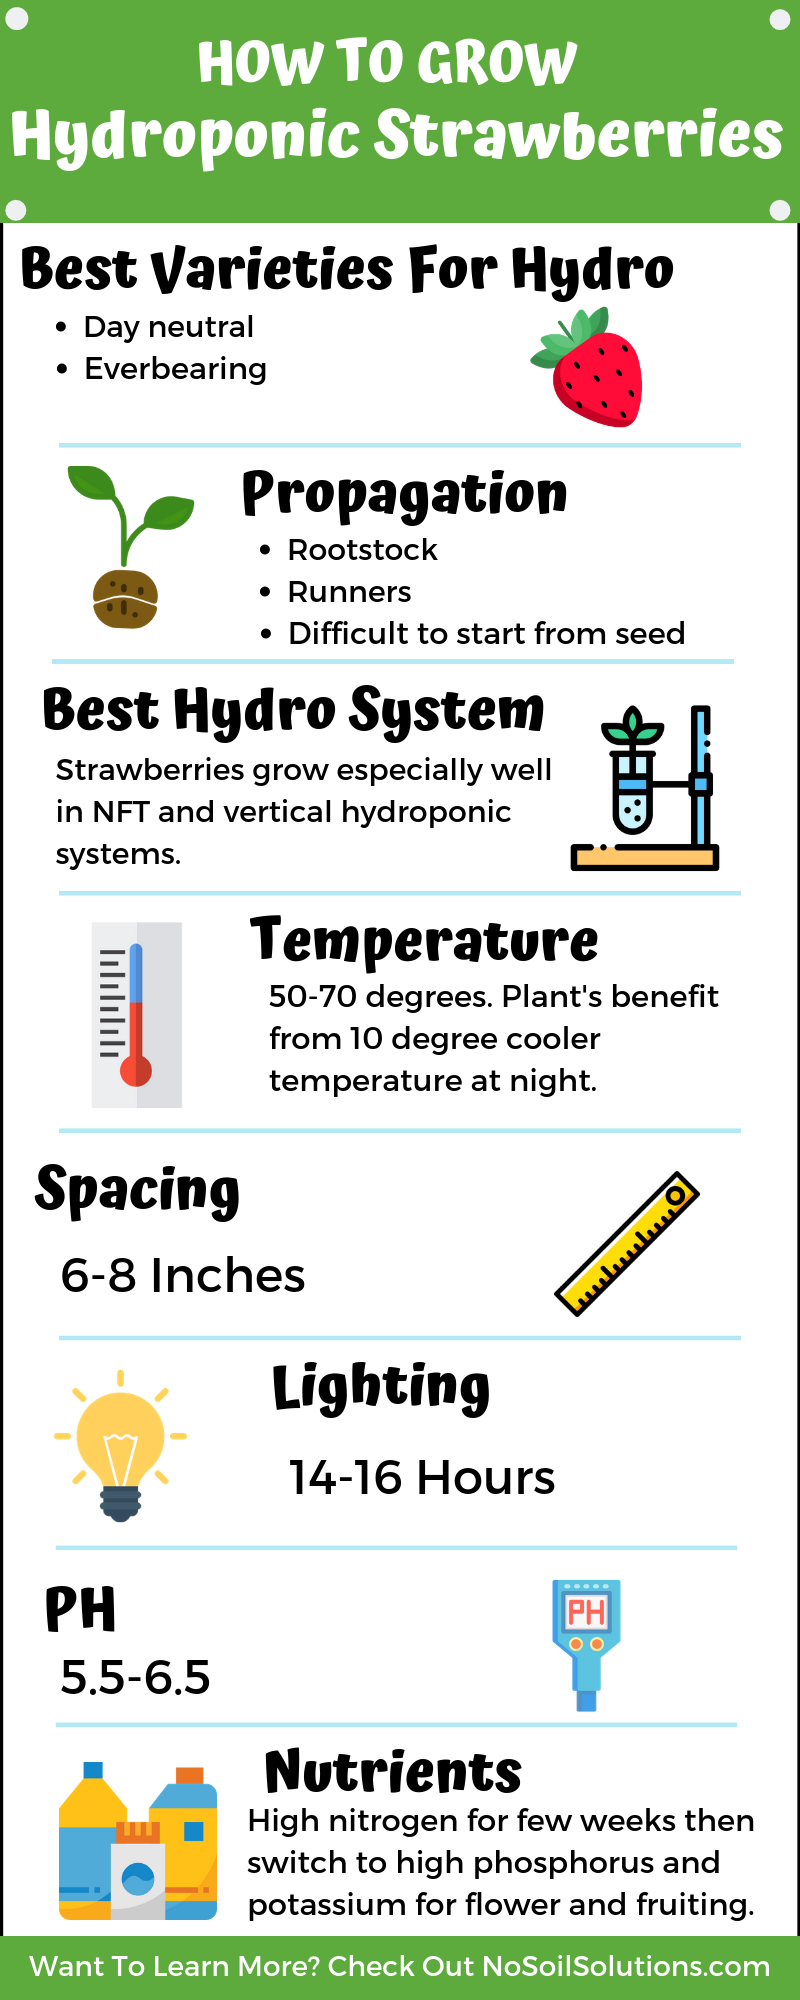 How To Grow Hydroponic Strawberries Infographic